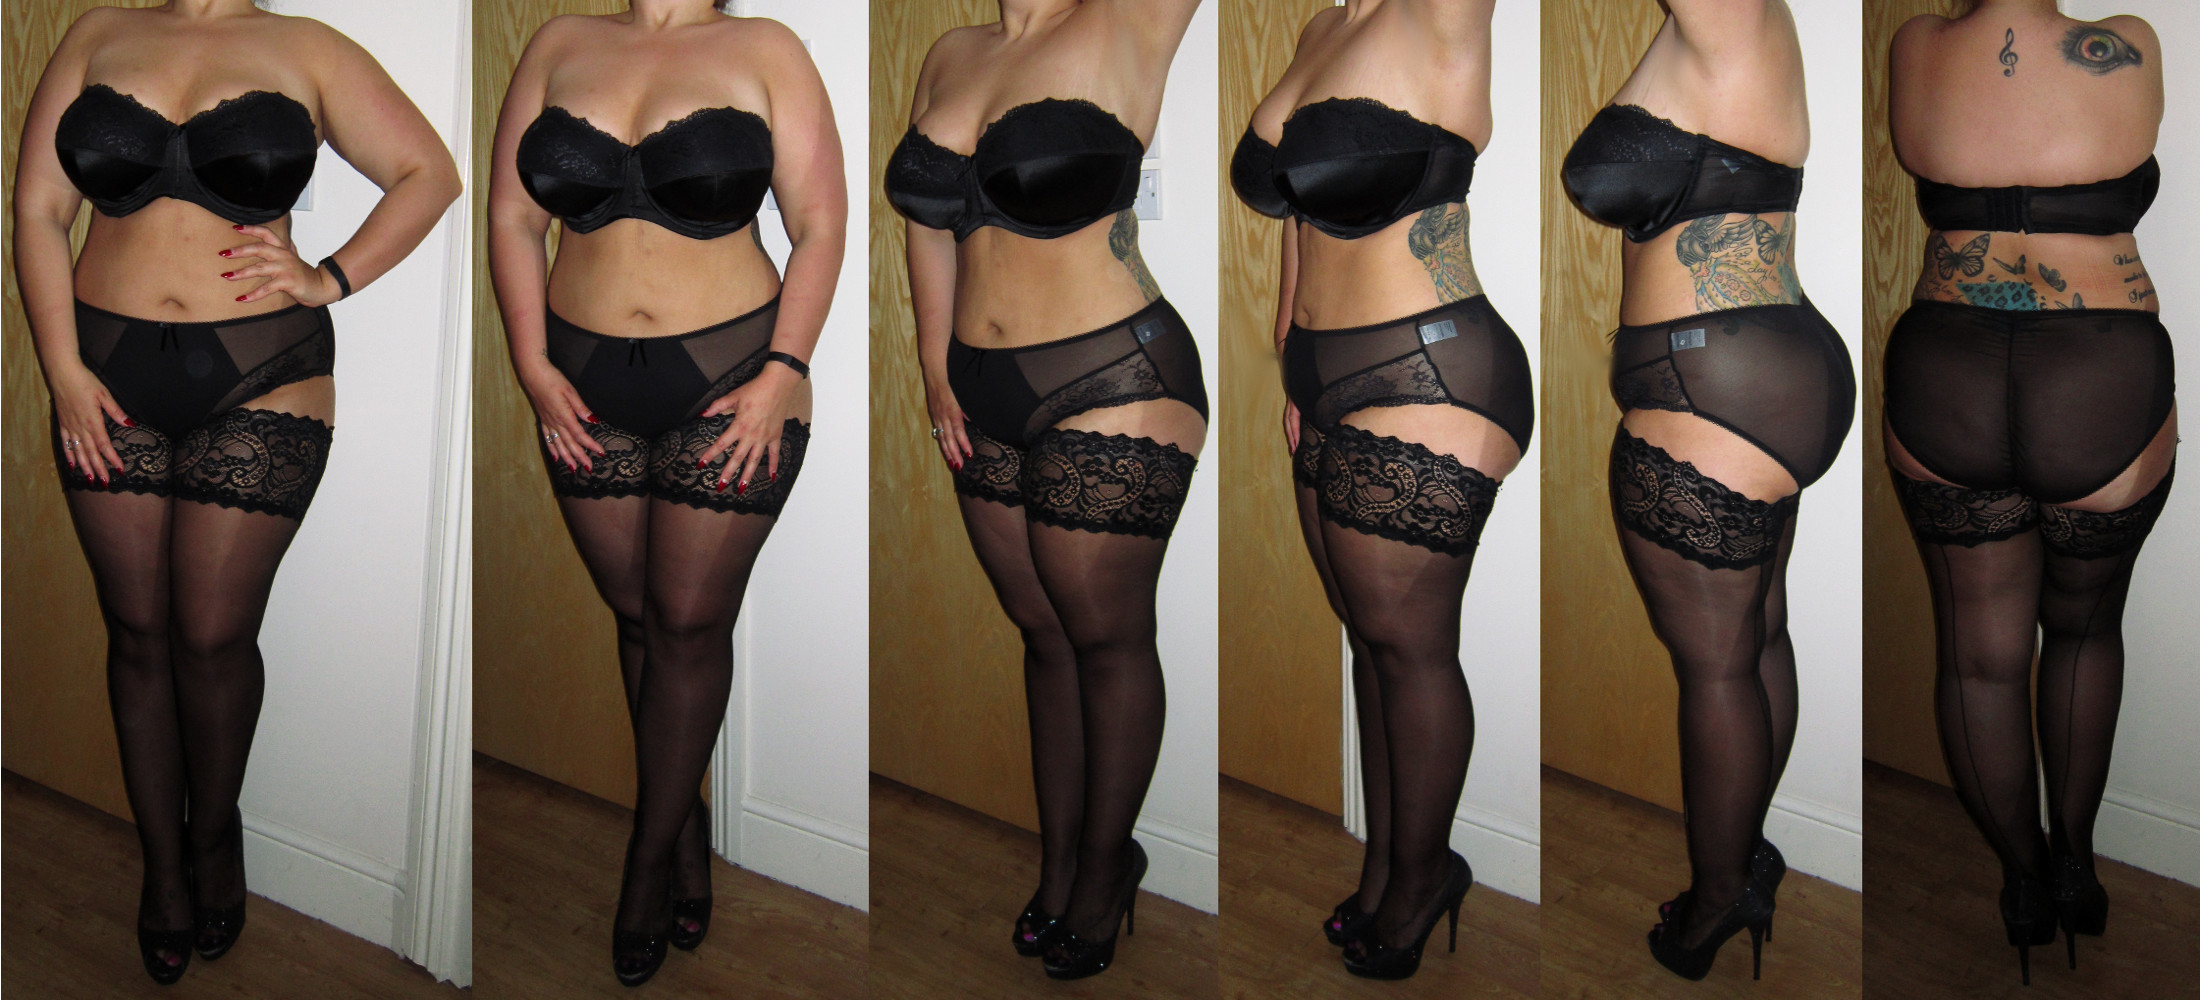 2ceaa32881 Fuller Figure Fuller Bust A Review Of The Maria Strapless Bra By Elomi